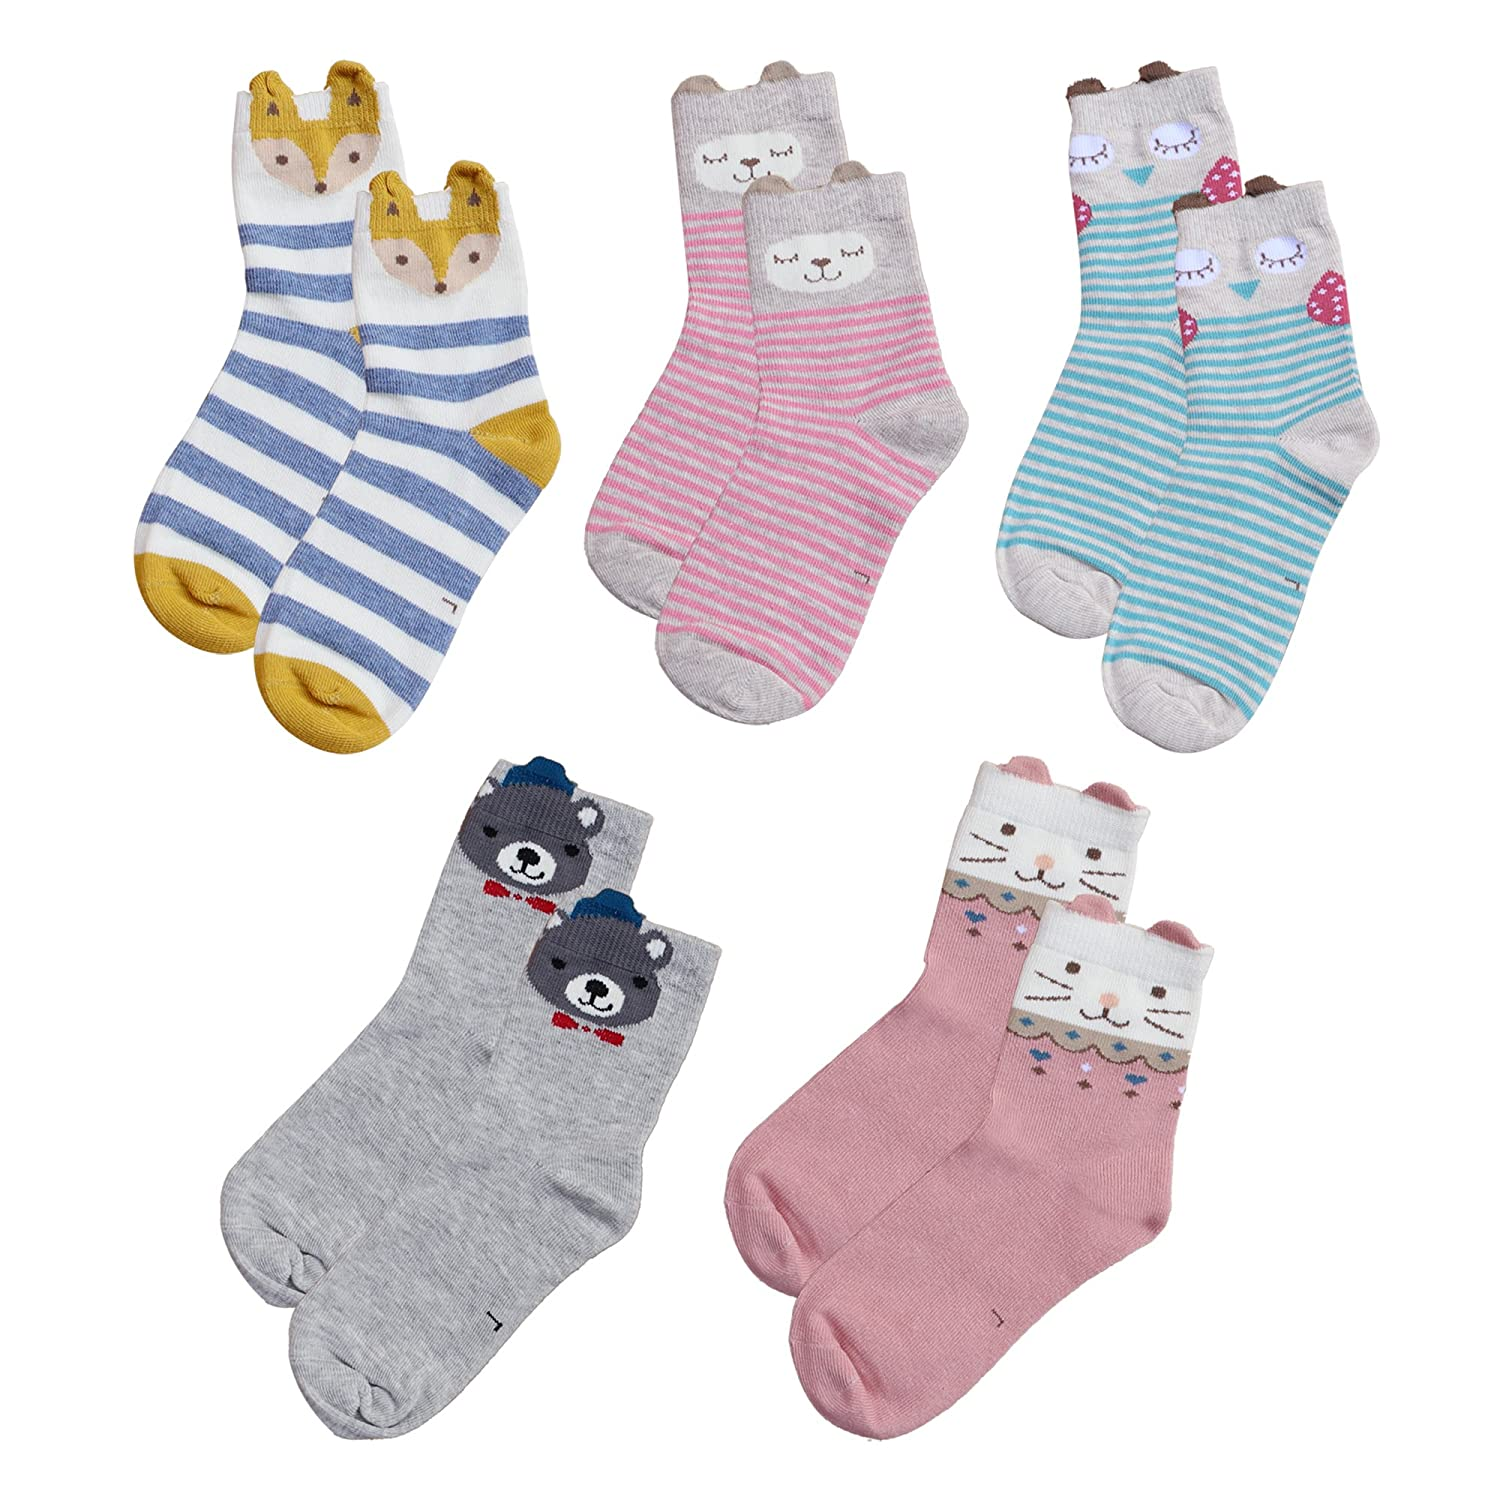 COCOSUN Girls Kids Cotton Assorted Novelty Patterns Solid/Striped Socks 5-Pack